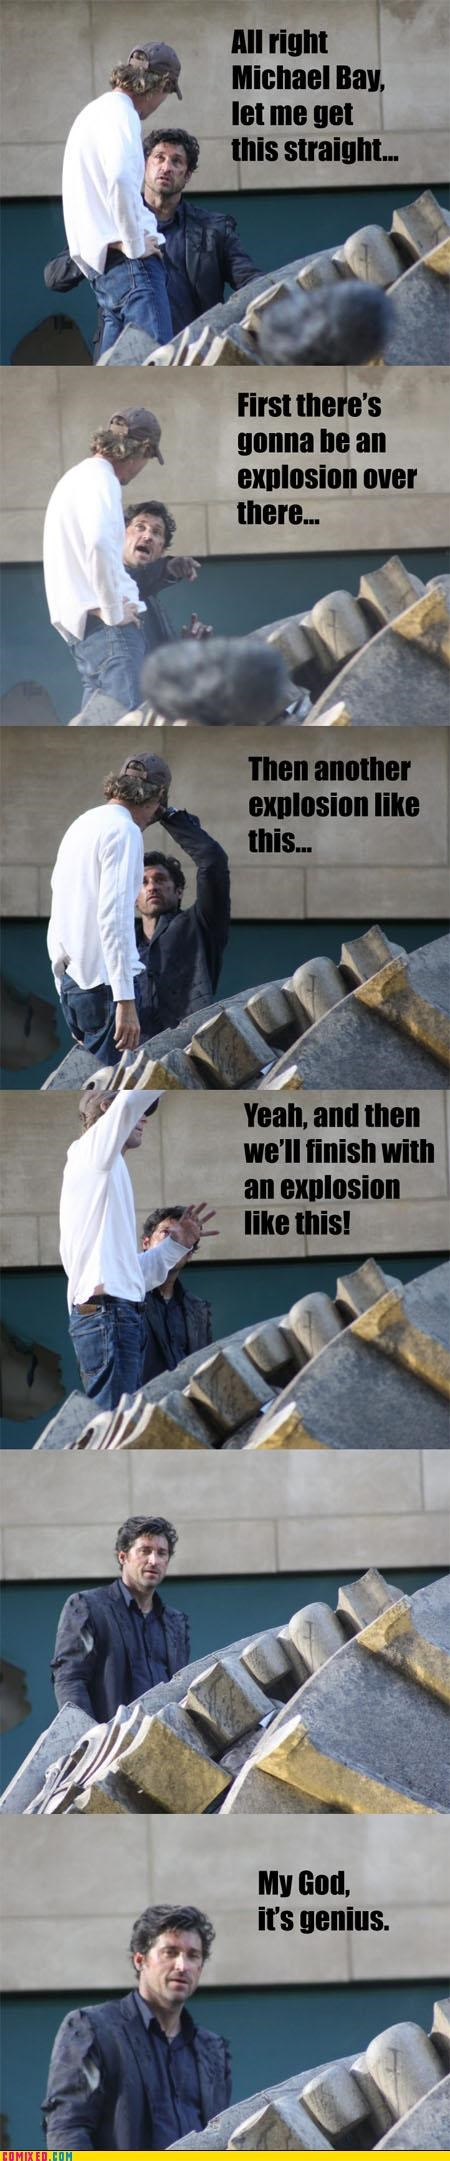 awesome director explosions From the Movies idiots Michael Bay movies - 3853889024